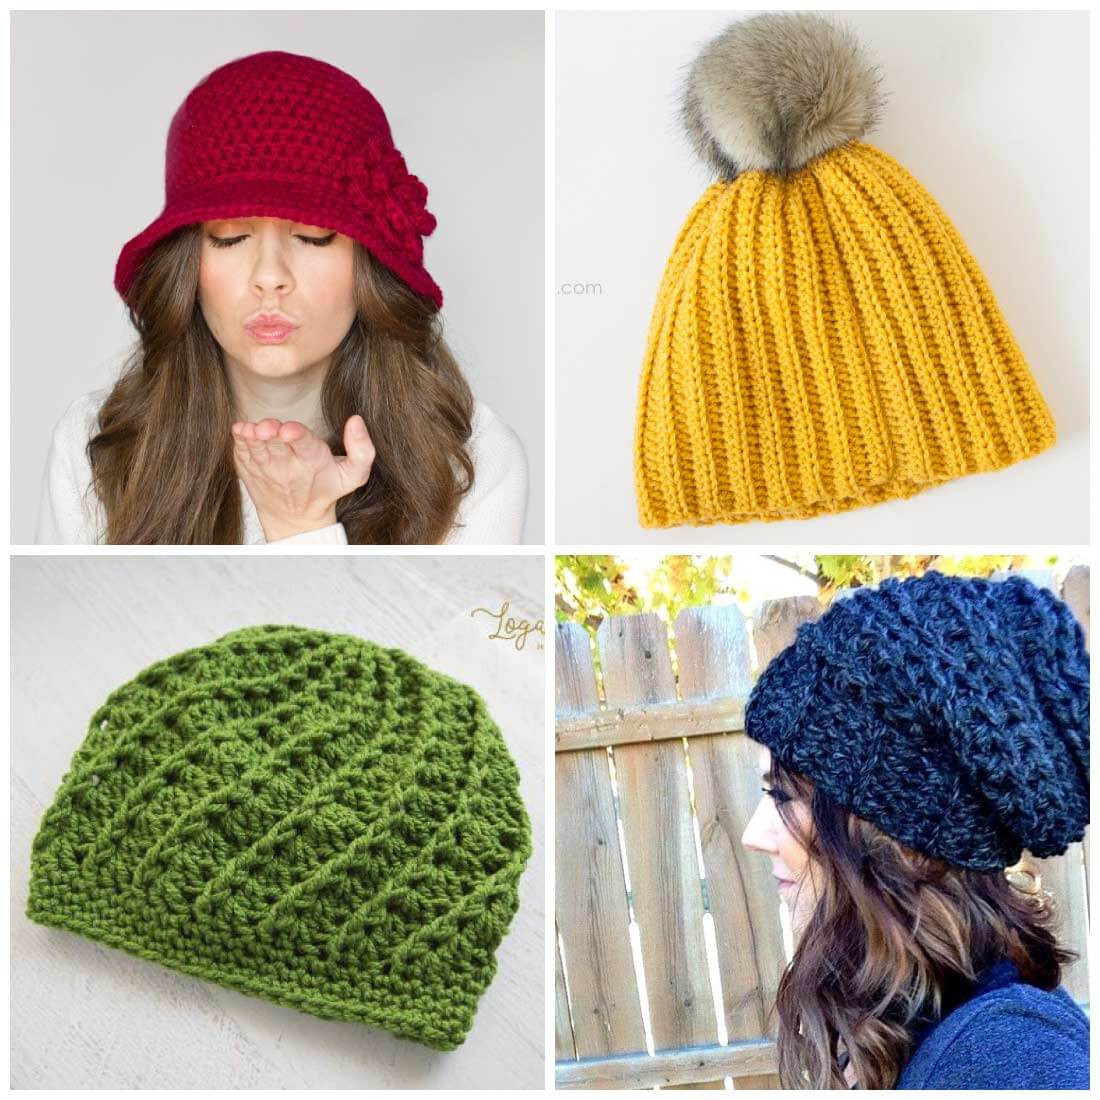 Elegant Free Crochet Hat Patterns Daisy Cottage Designs Free Crochet Beanie Hat Pattern Of Amazing 48 Images Free Crochet Beanie Hat Pattern